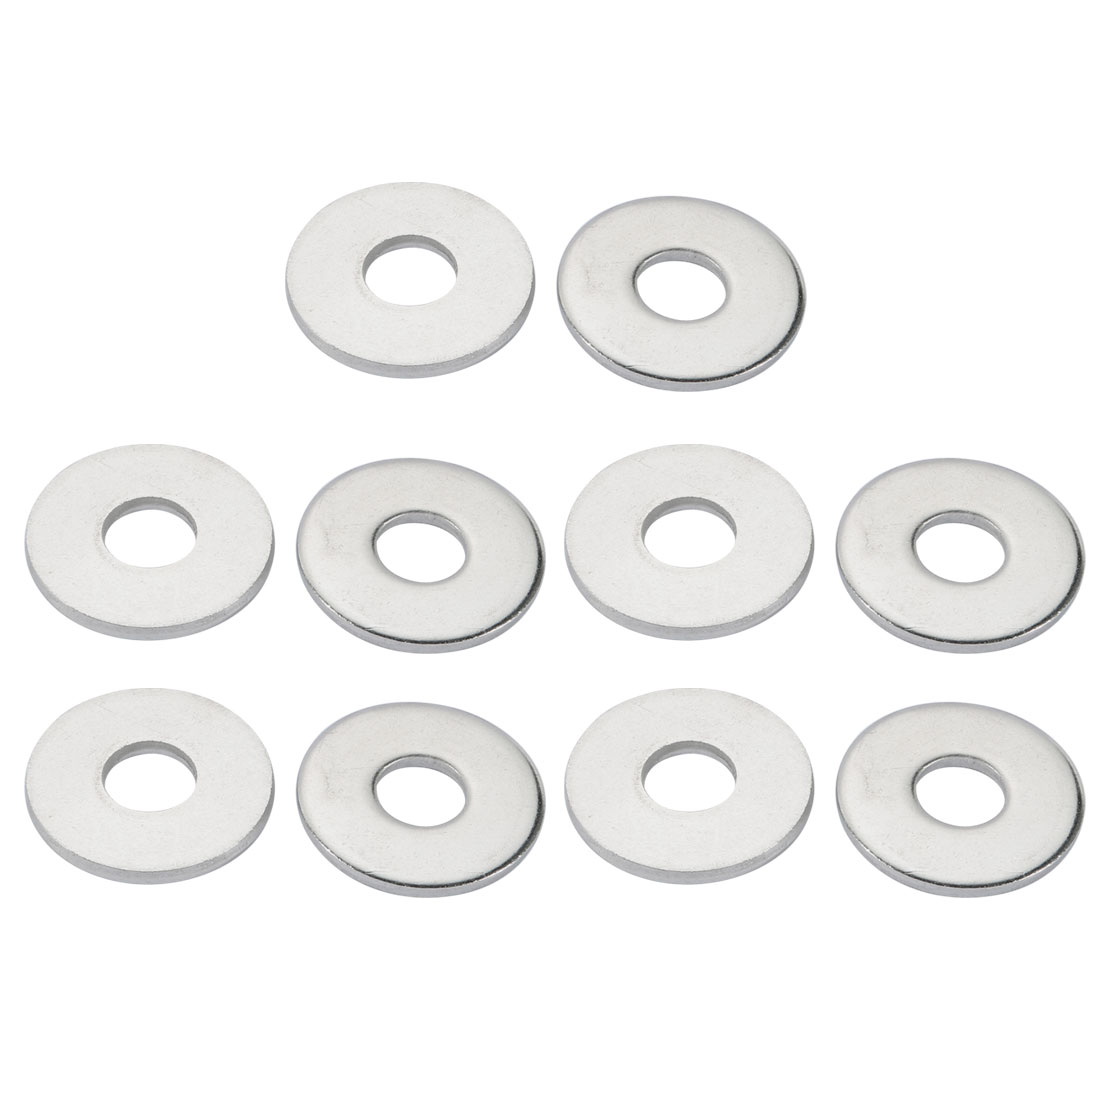 M12x37mmx3mm DIN9021 316 Stainless Steel Flat Washer Silver Tone 10pcs